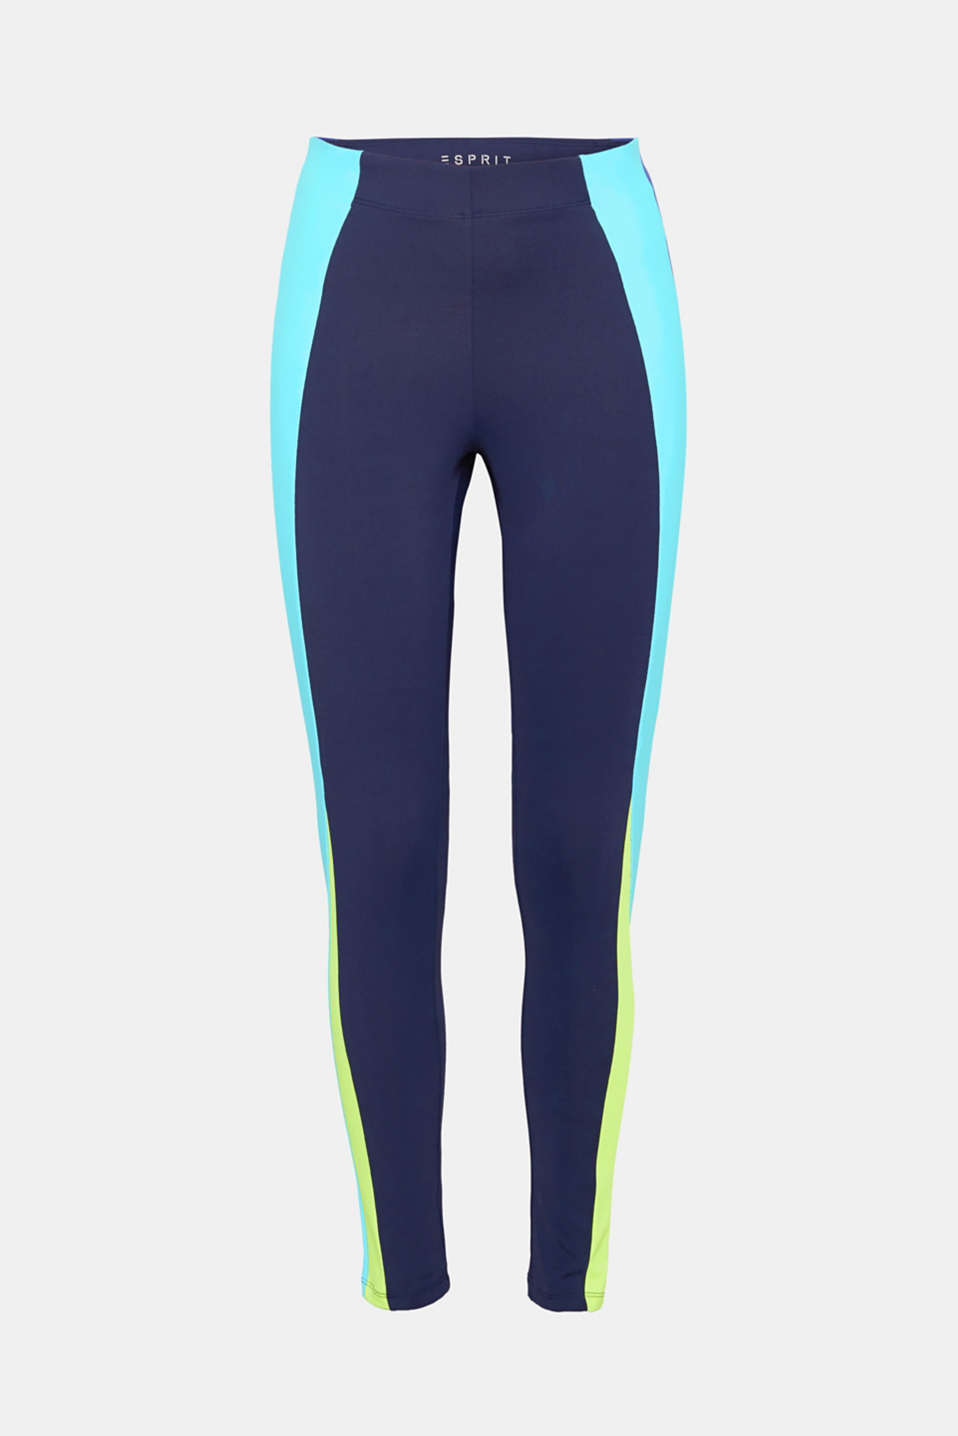 These active leggings with colour block stripes and an E-DRY finish create visual accents and accentuate a slim silhouette!